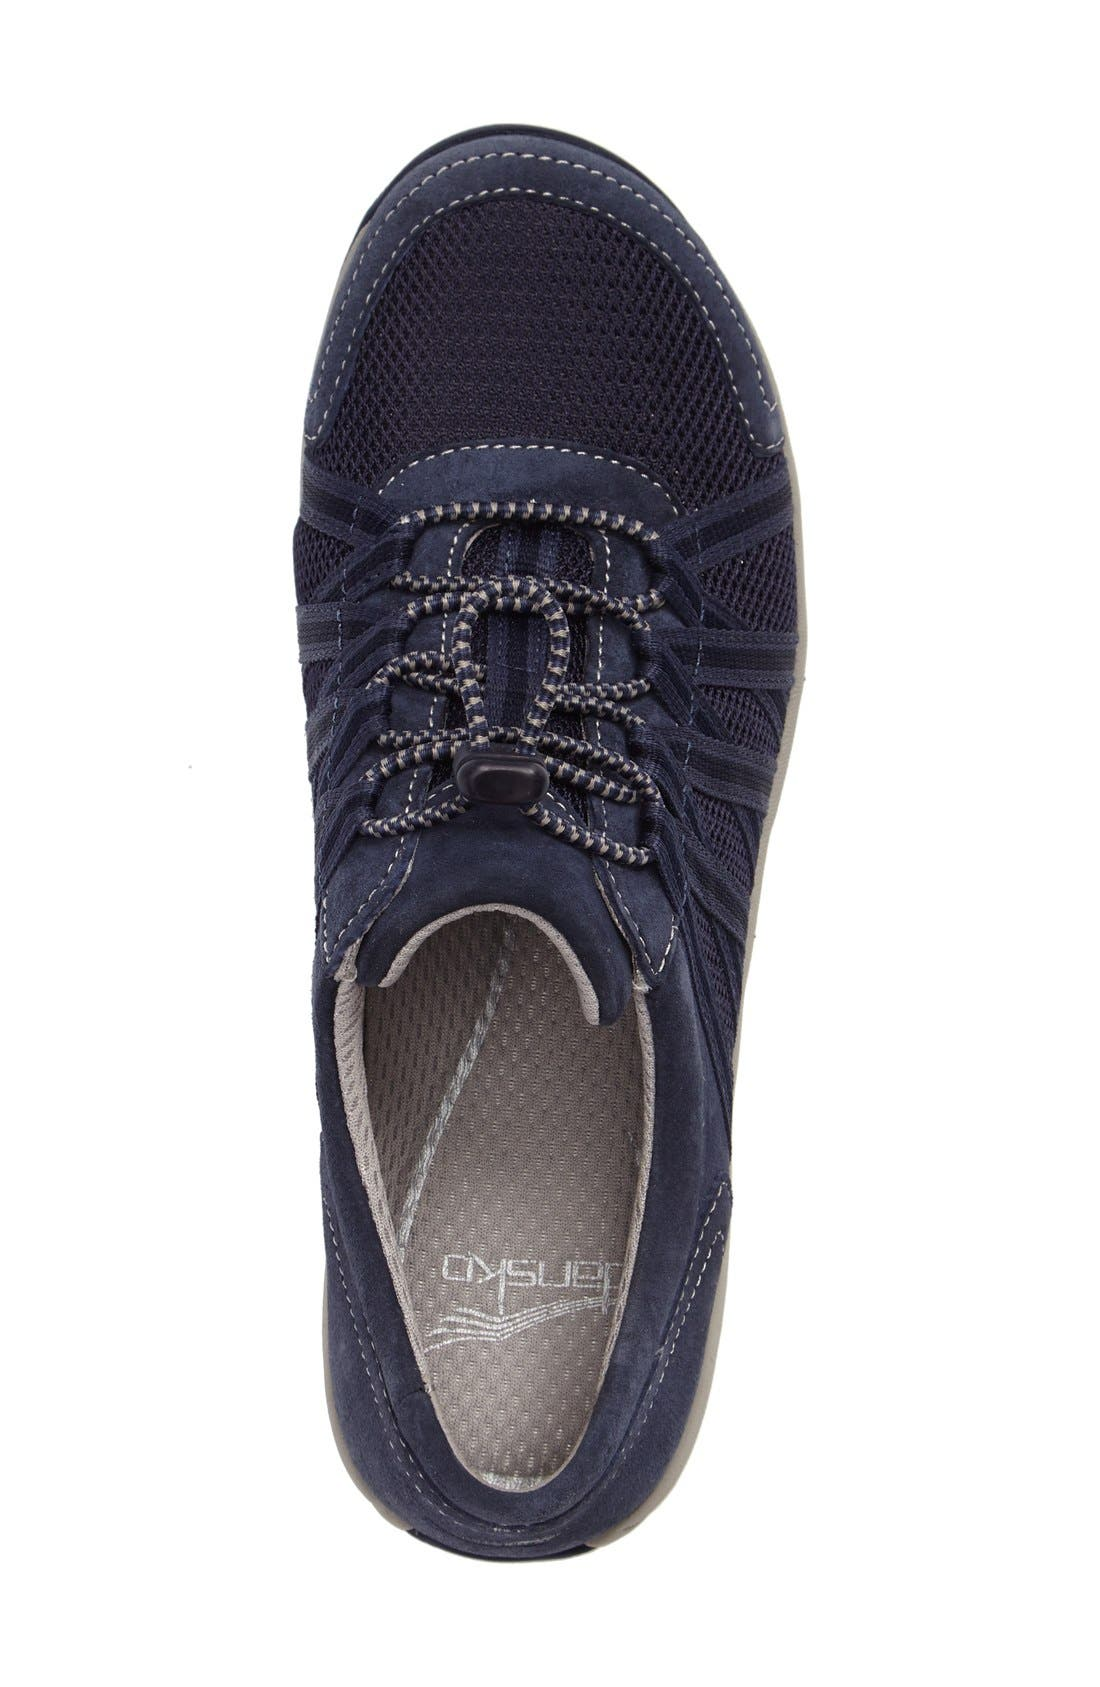 Halifax Collection Honor Sneaker,                             Alternate thumbnail 45, color,